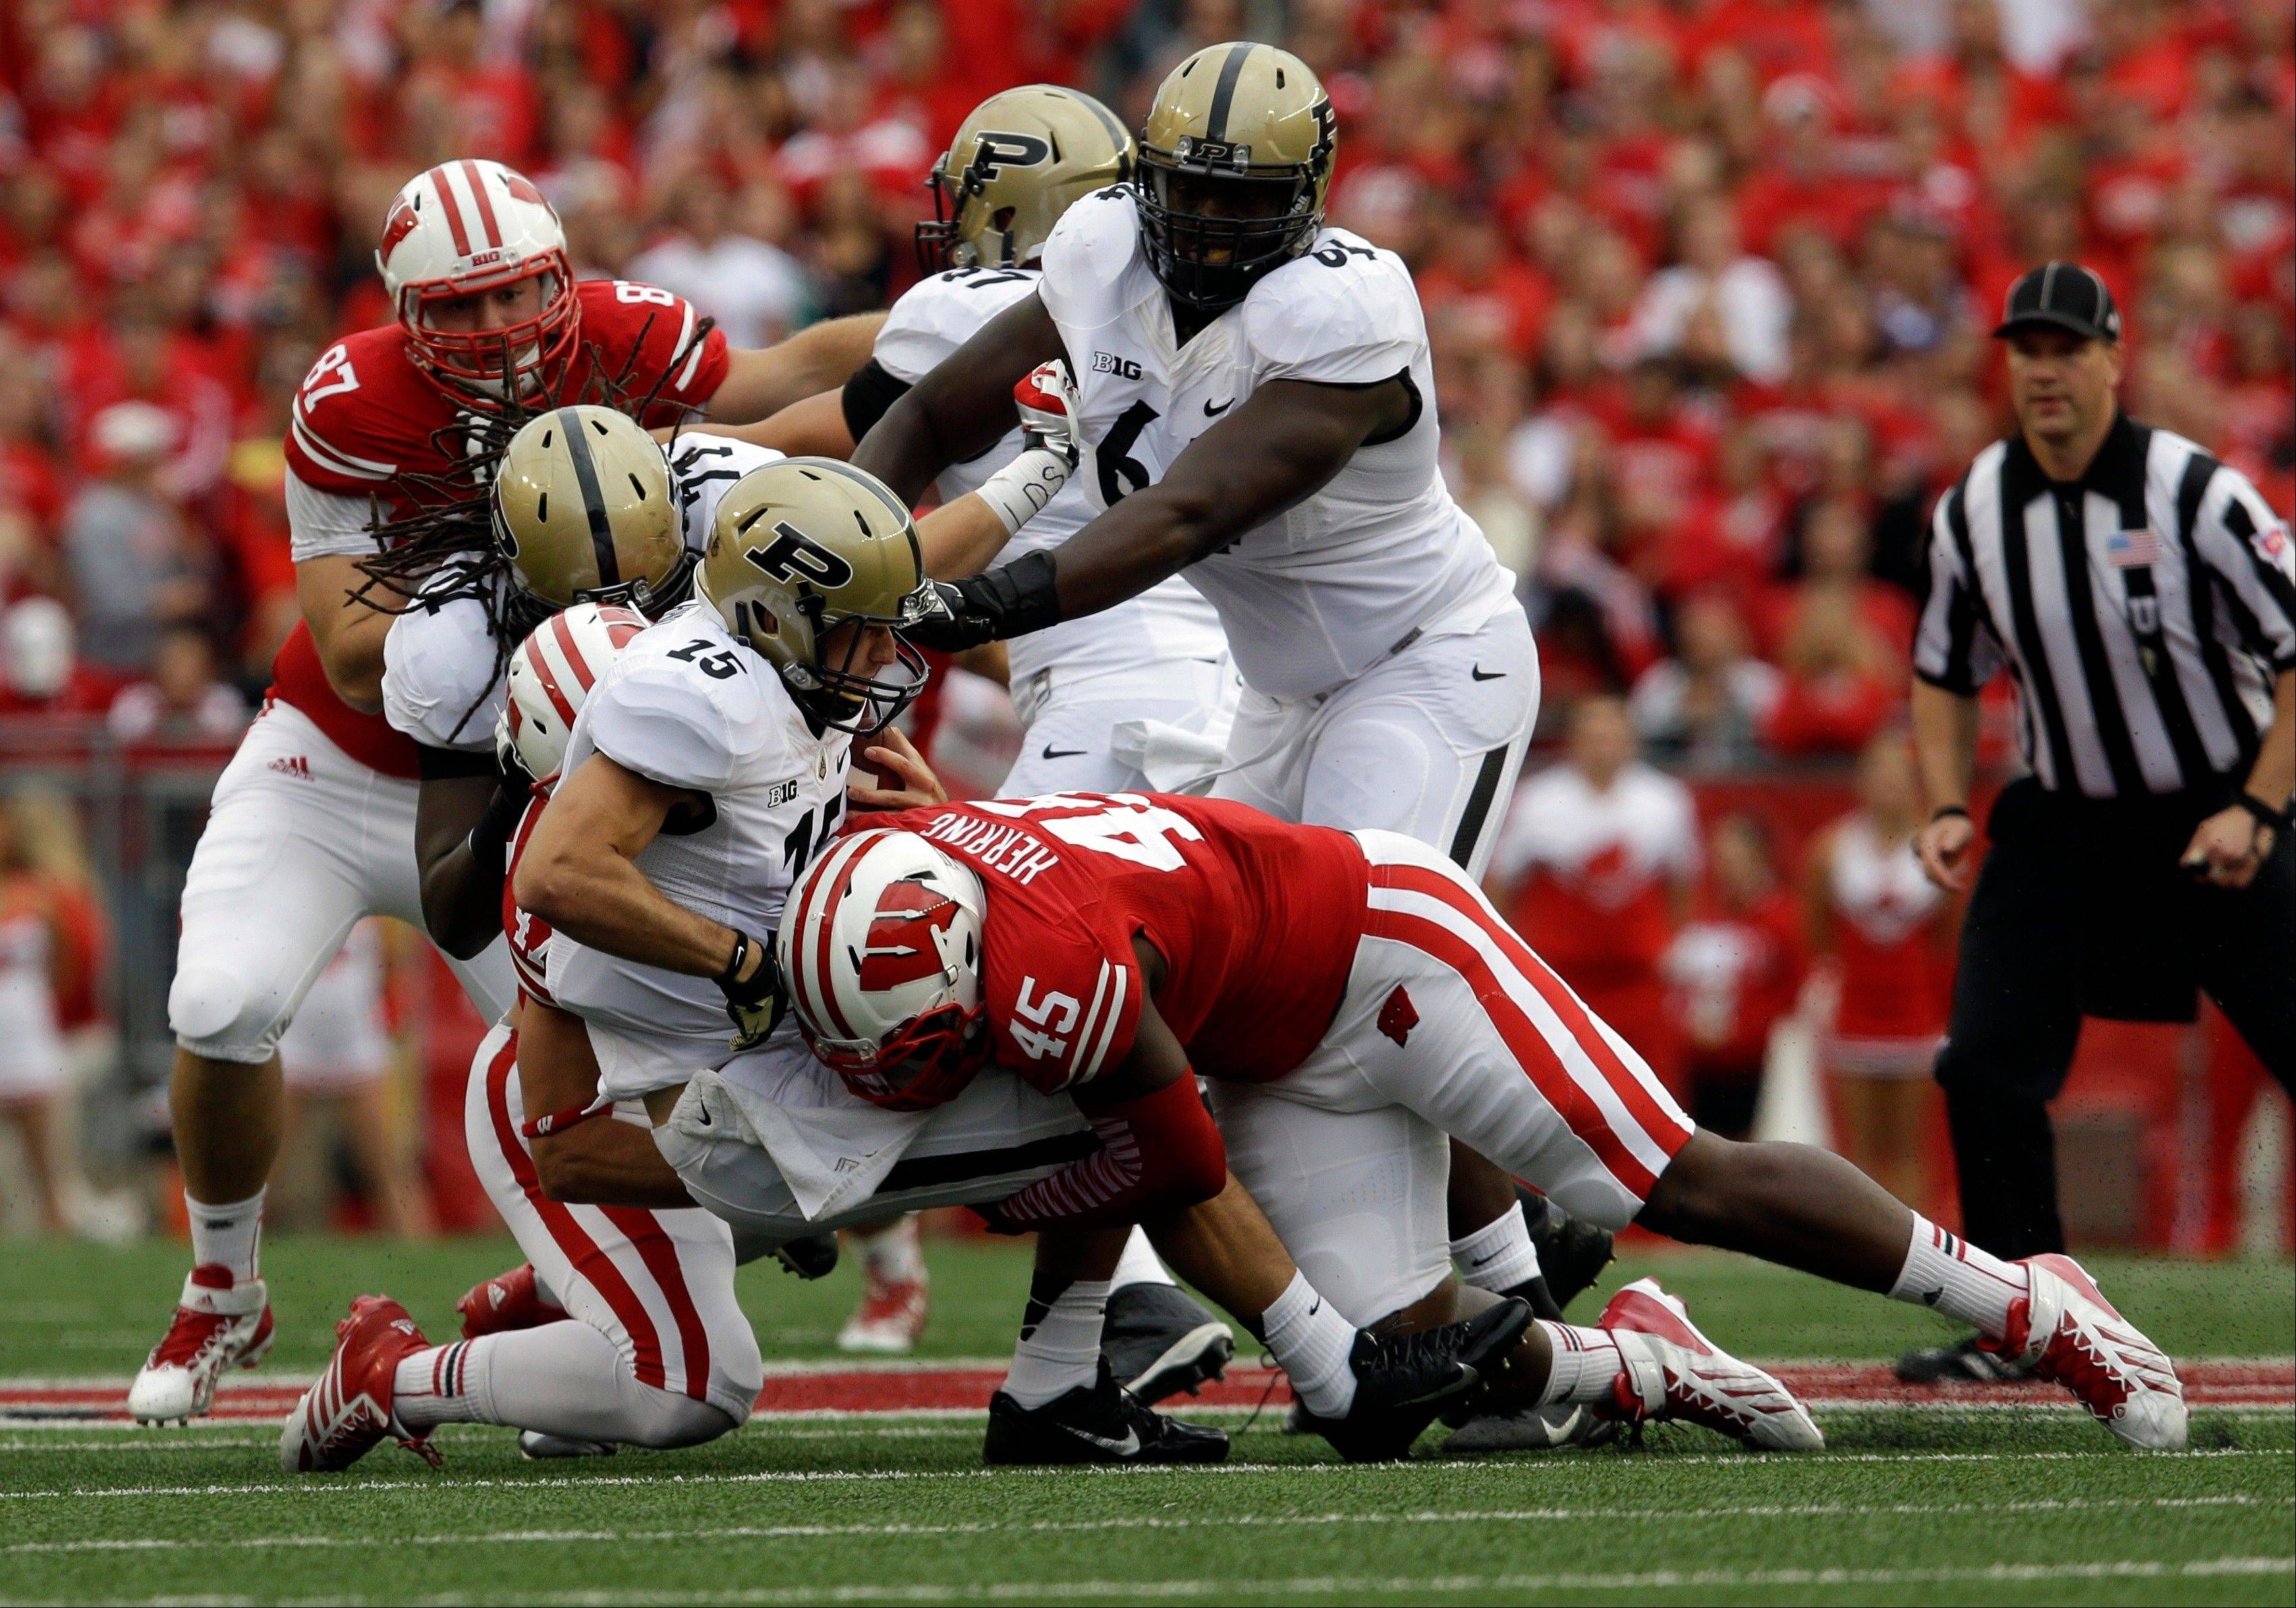 Wisconsin's Warren Herring sacks Purdue quarterback Rob Henry during the first half of Saturday's game in Madison, Wis. This week against Ohio State, the Badgers would like nothing better than for their big guys up front to decide the game.